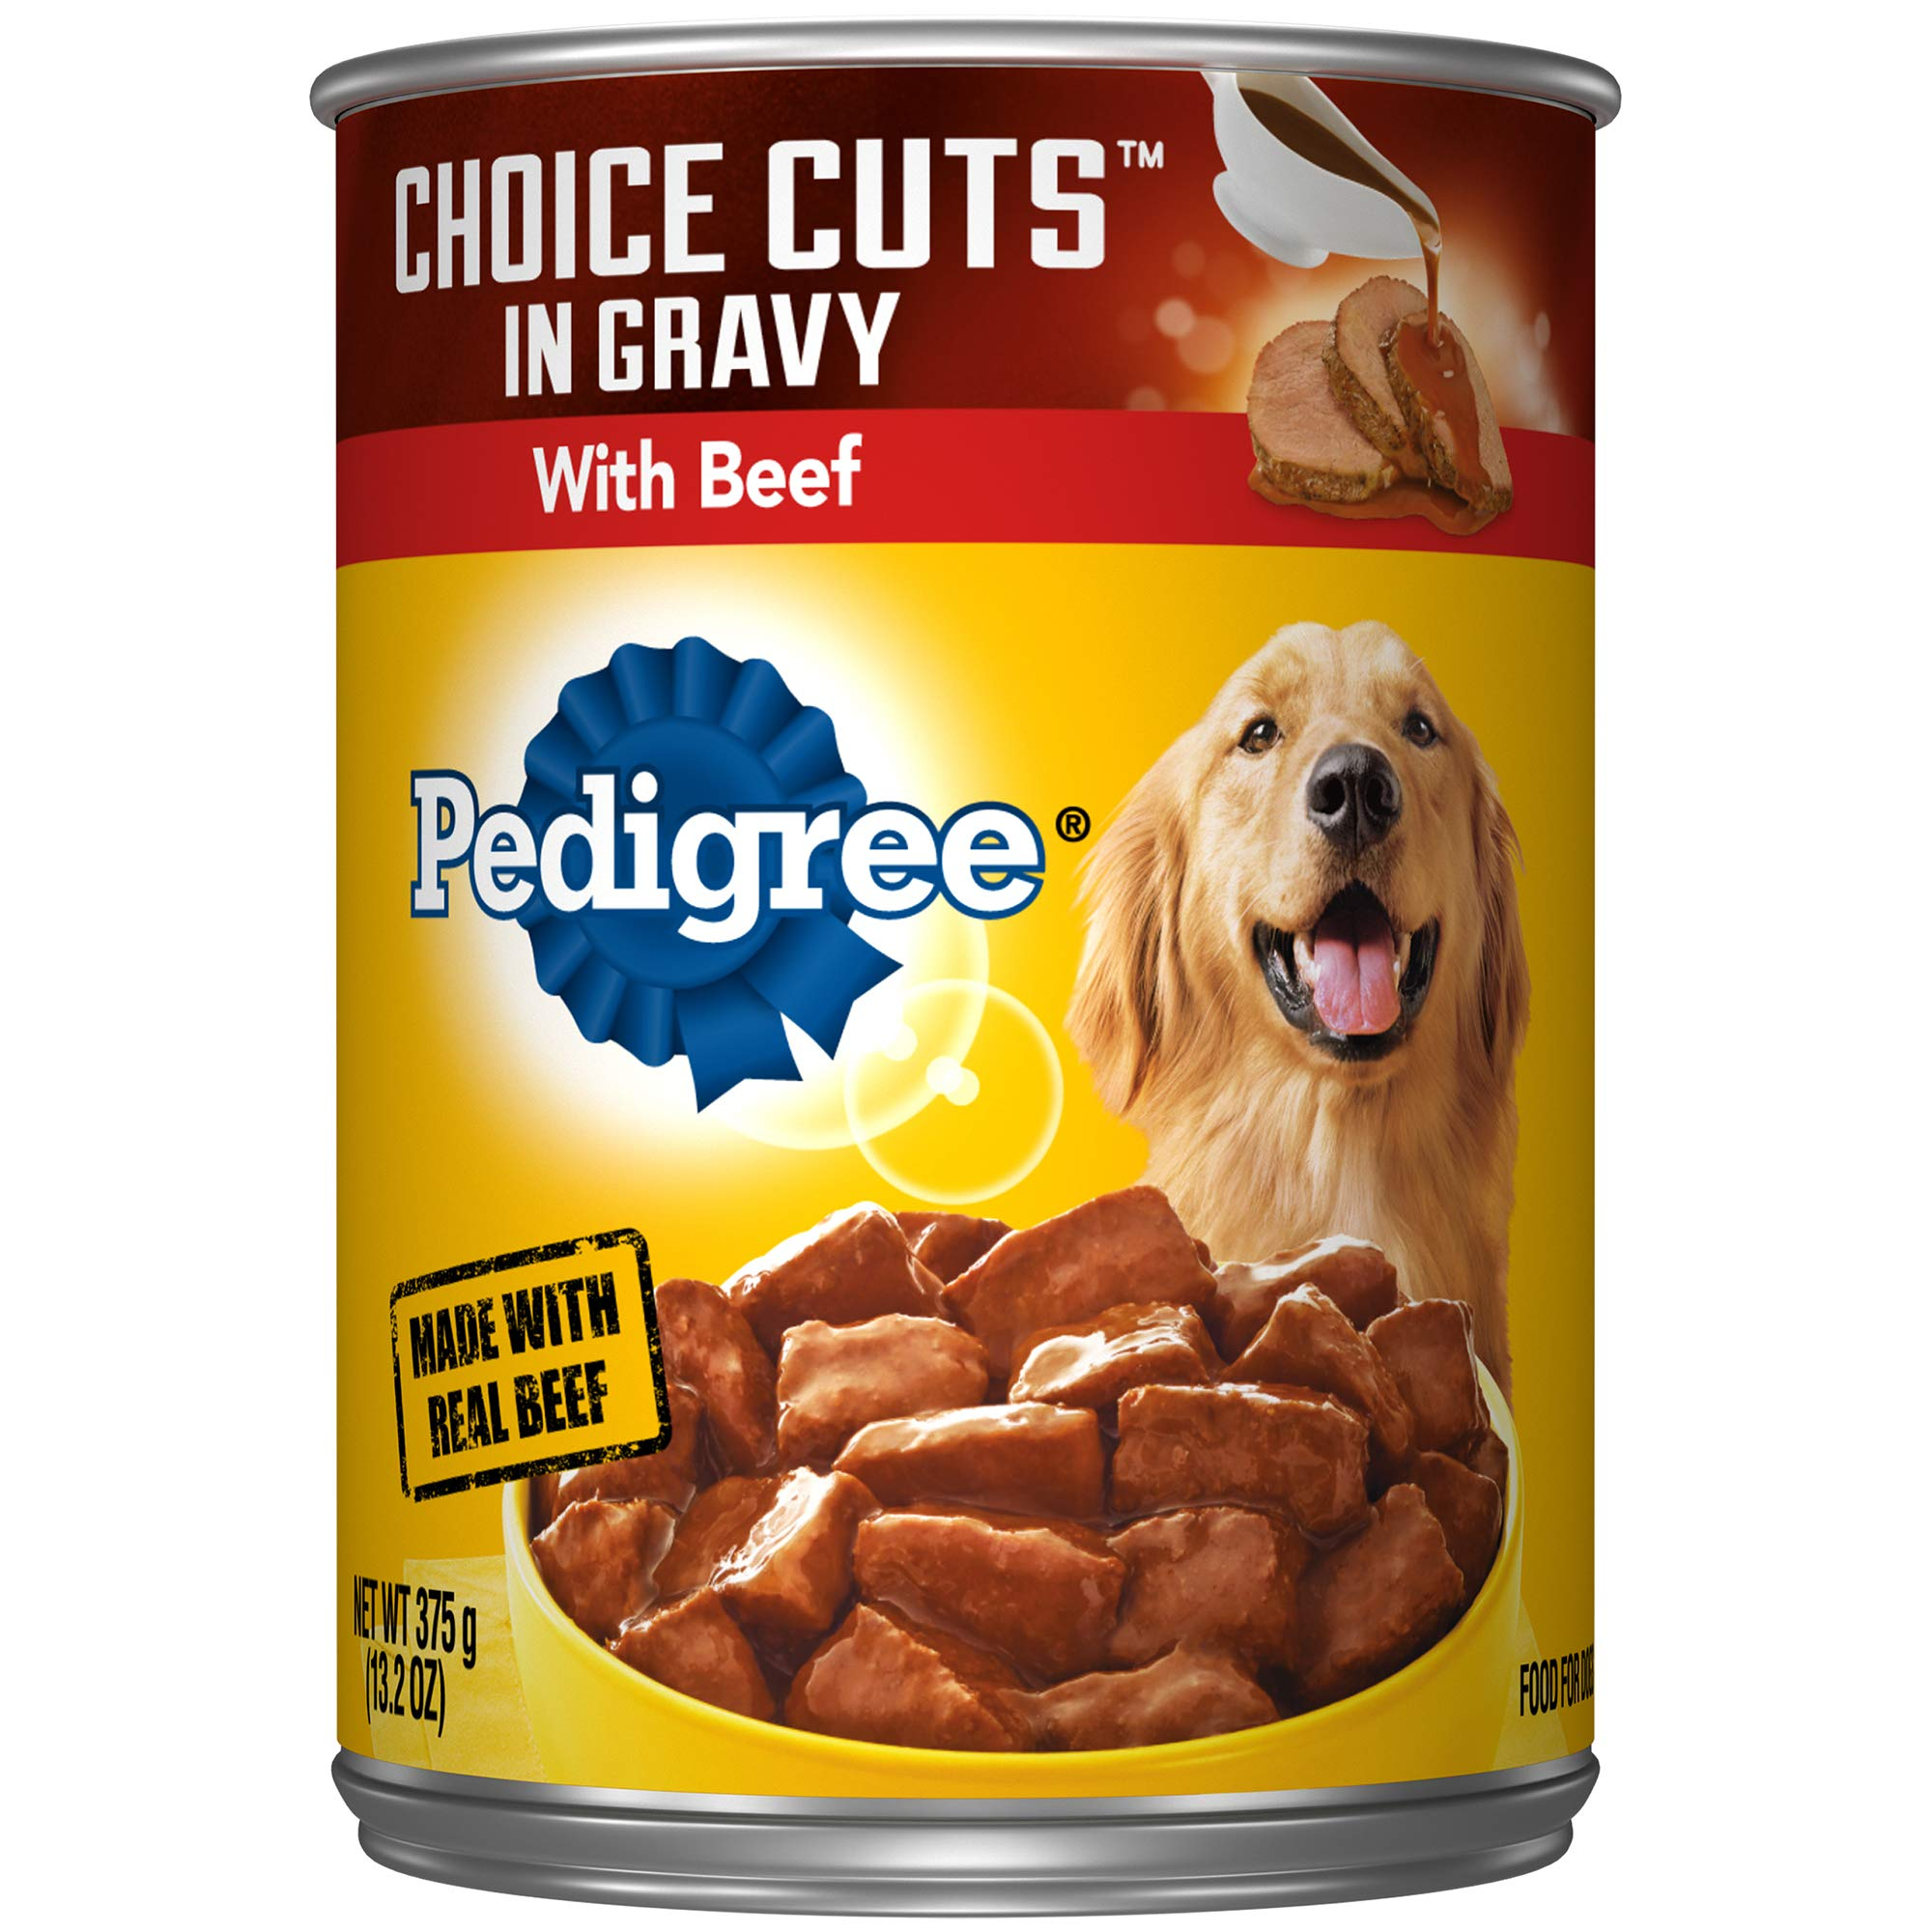 PEDIGREE CHOICE CUTS IN GRAVY Adult Canned Wet Dog Food, 13.2 oz. Cans (Pack of 12)